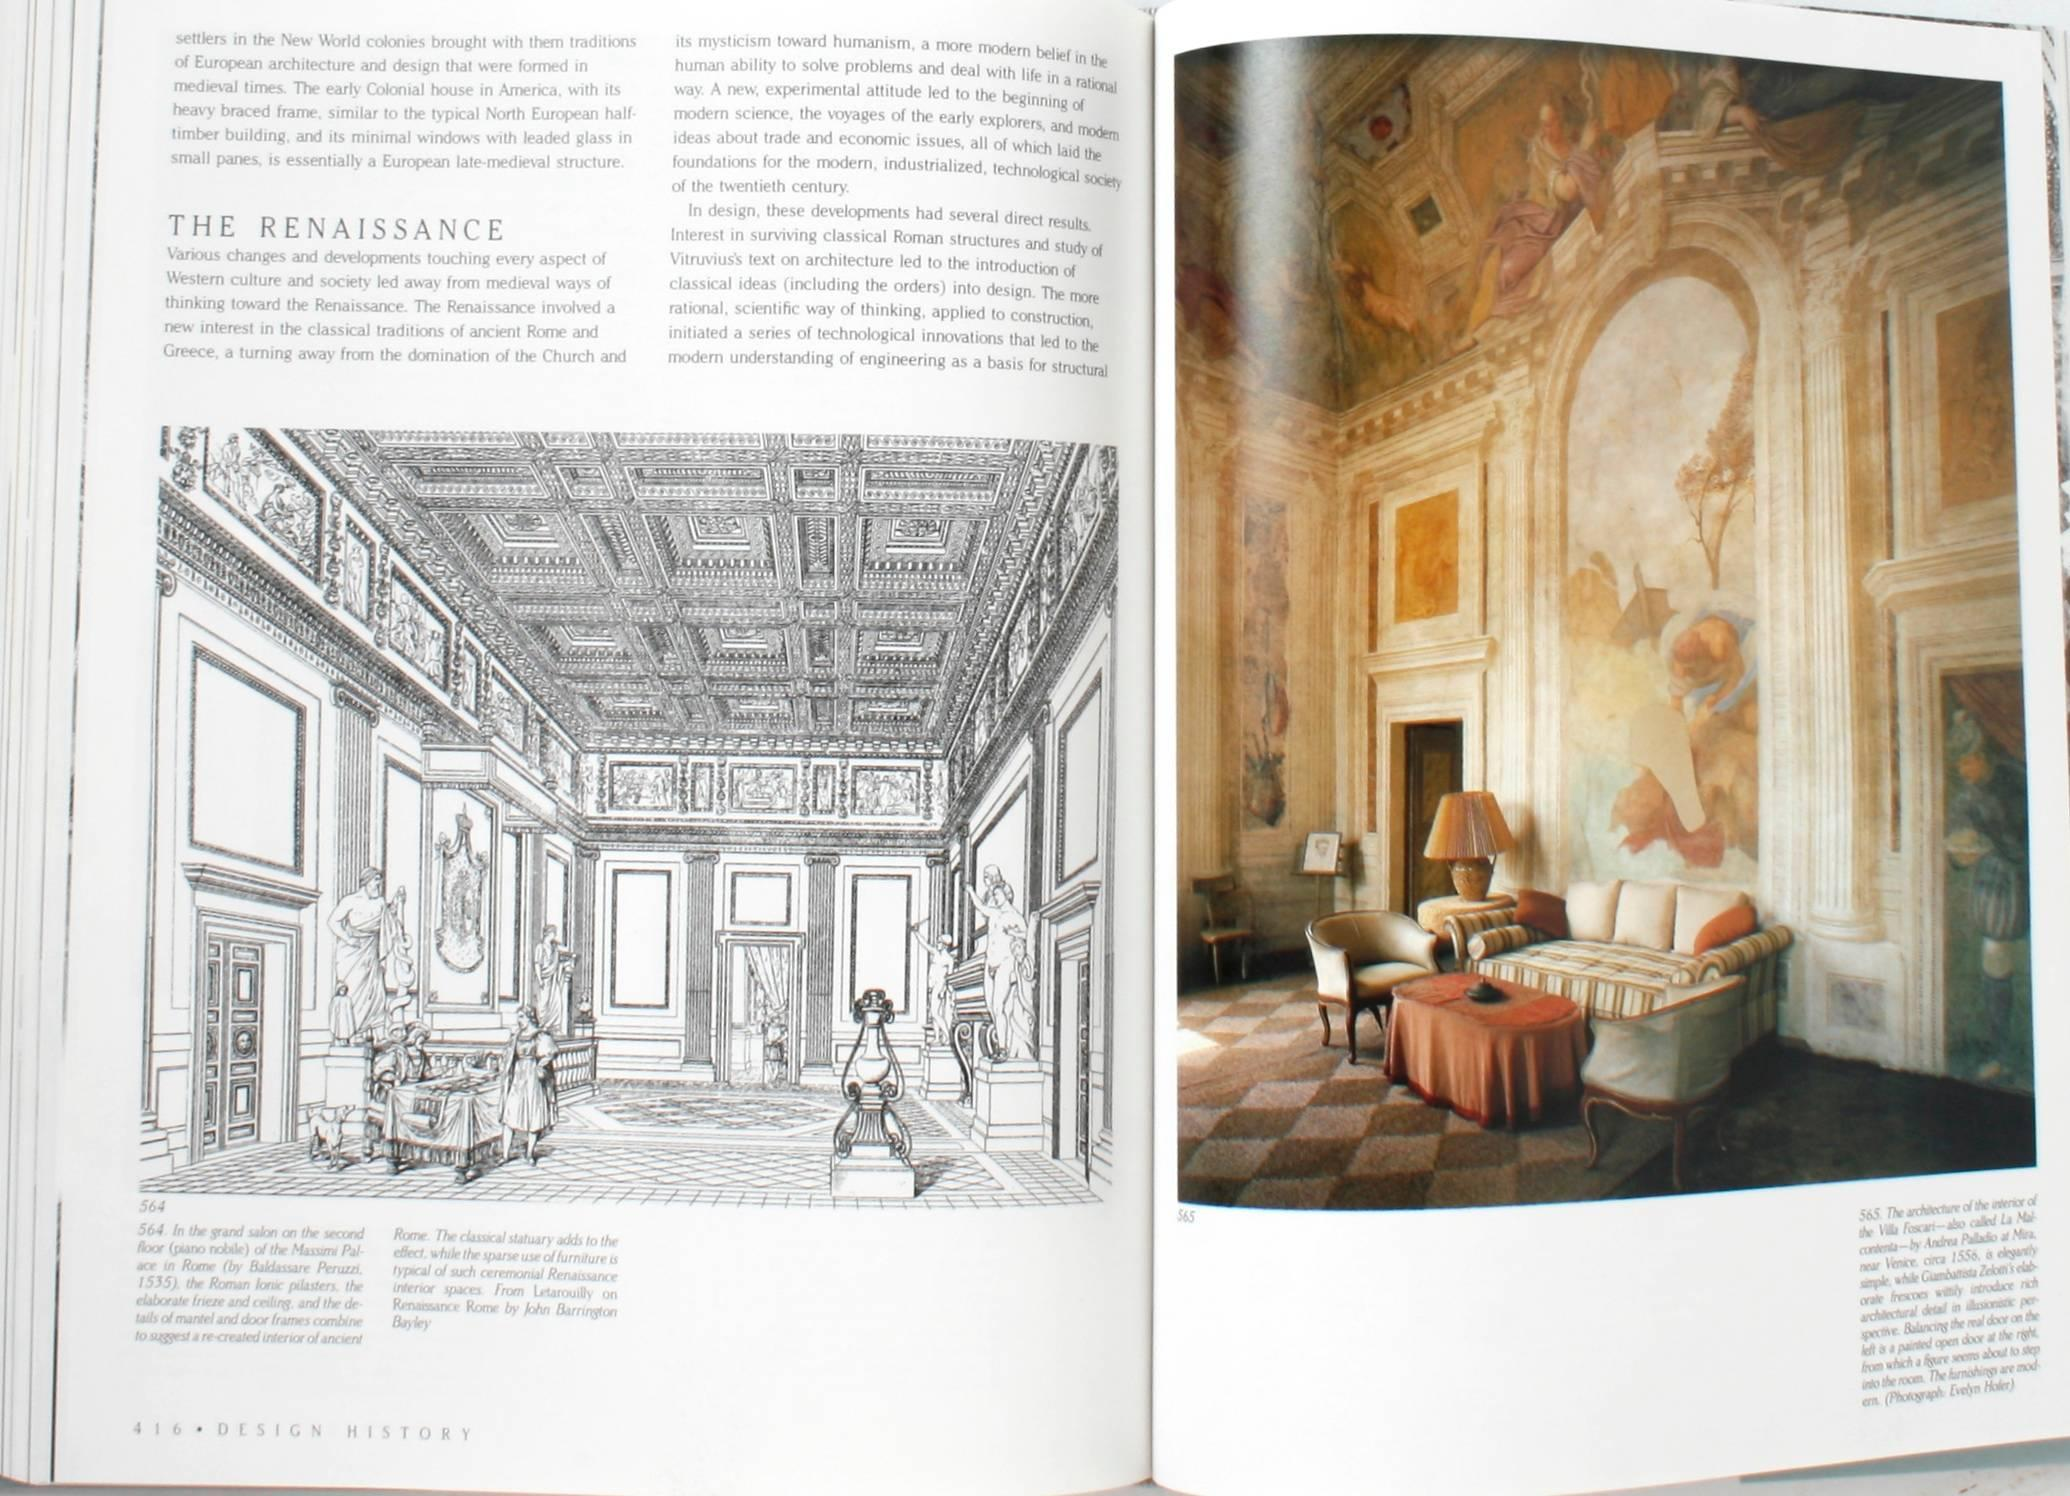 Interior Design by John Pile 1st Edition at 1stdibs